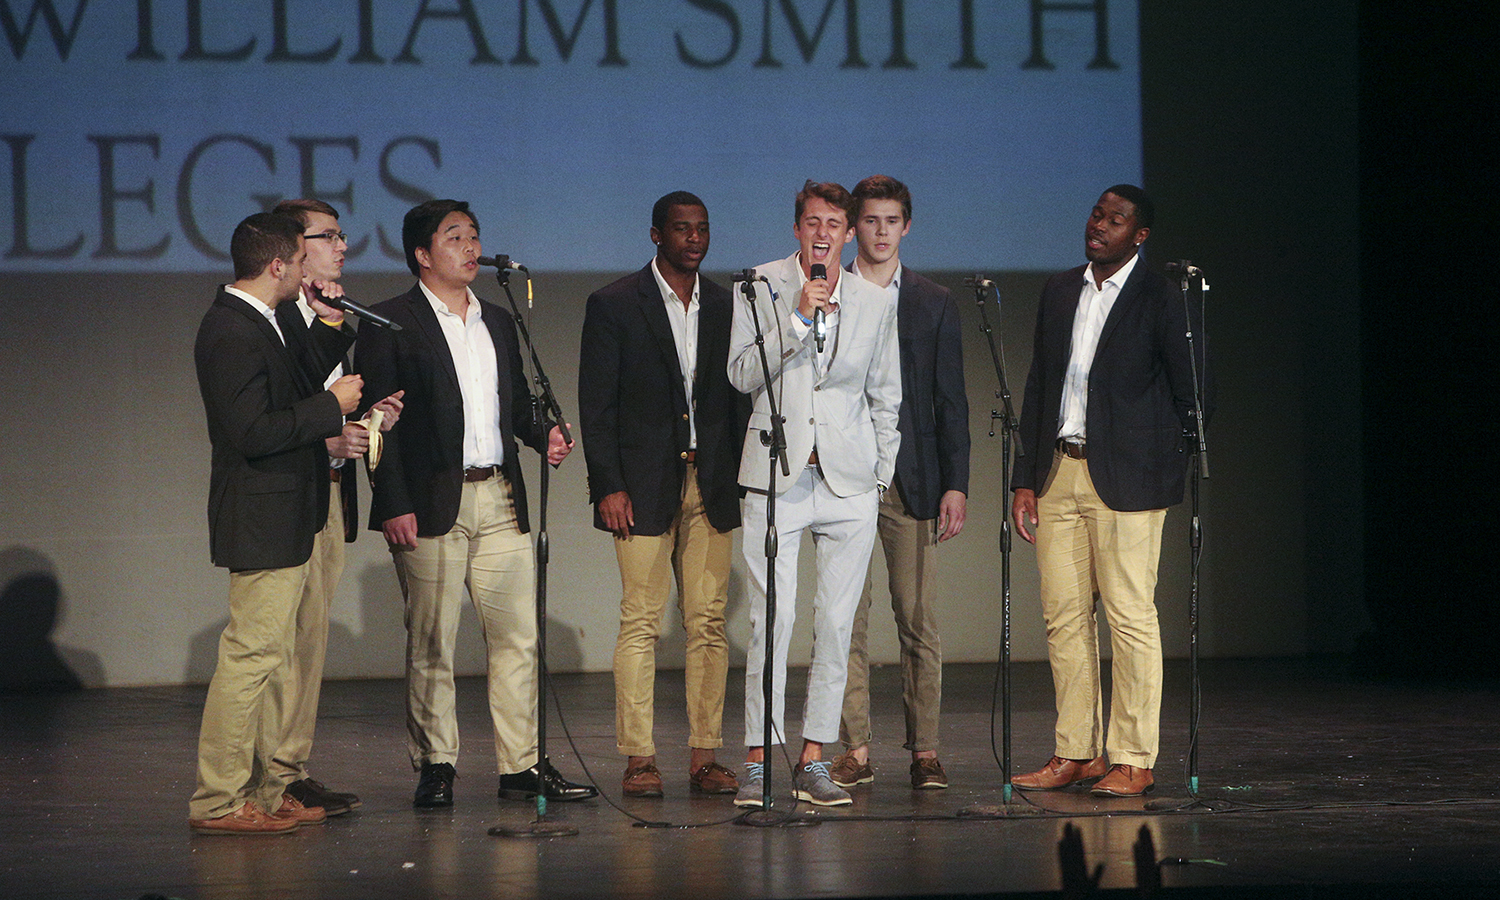 Hobartones, the Hobart college acapella group, perform at the Variety Show at the Smith Opera House in downtown Geneva.